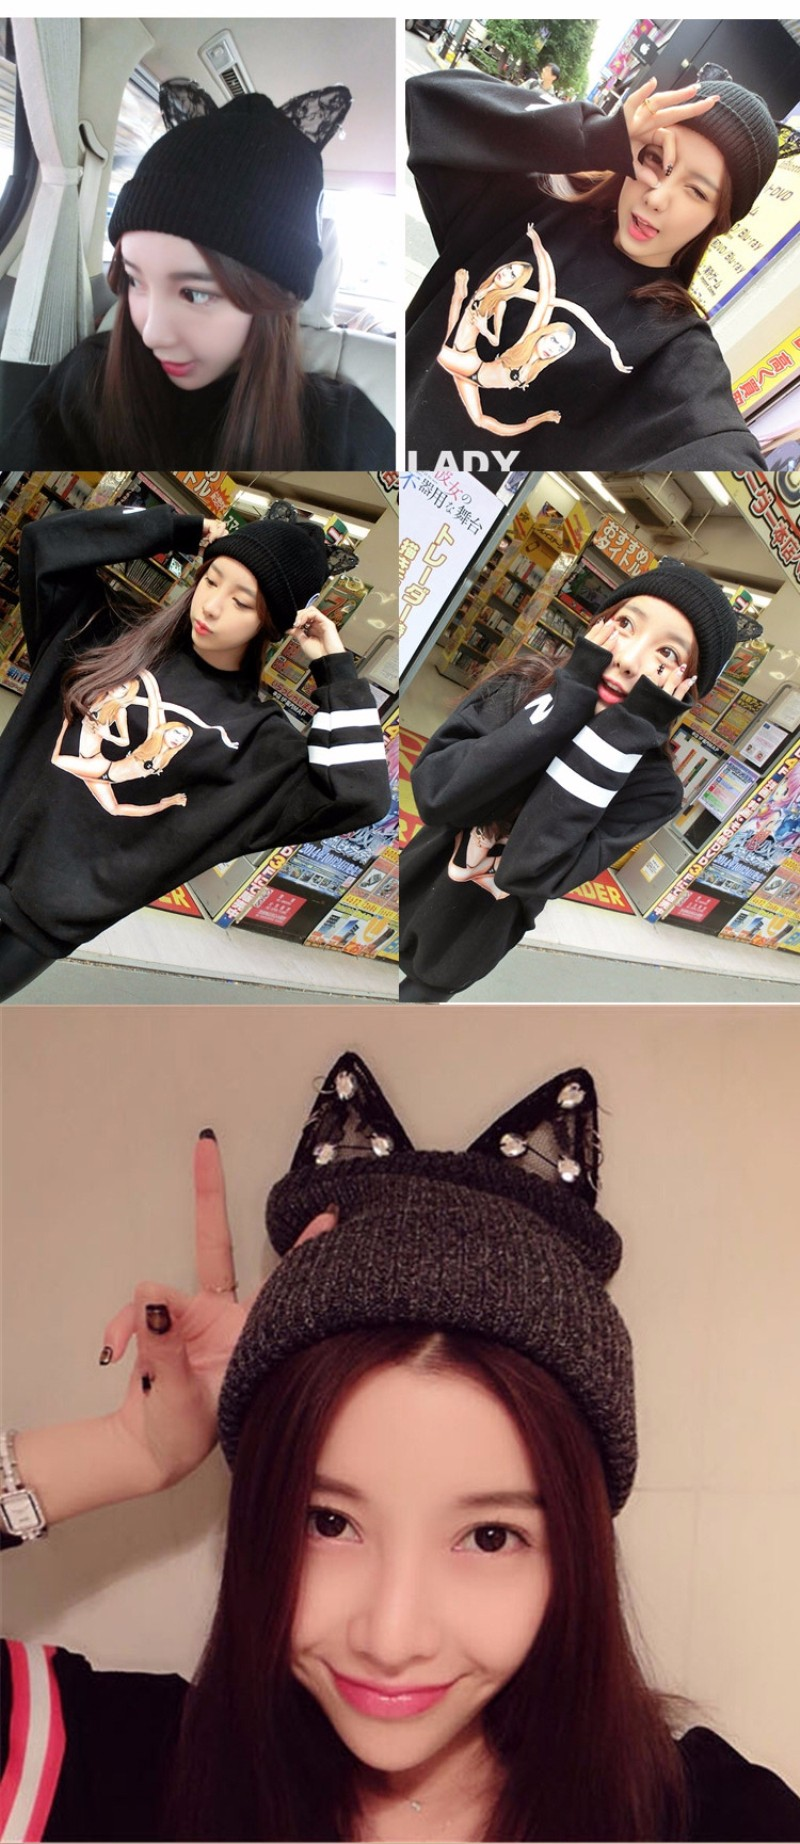 25813a81 Kawaii 20clothing 20cute 20ropa 20harajuku 20cat 20hat 20beanie 20cap  20ears 20lace 20jewels 20gato 20gorro 20orejas 20black